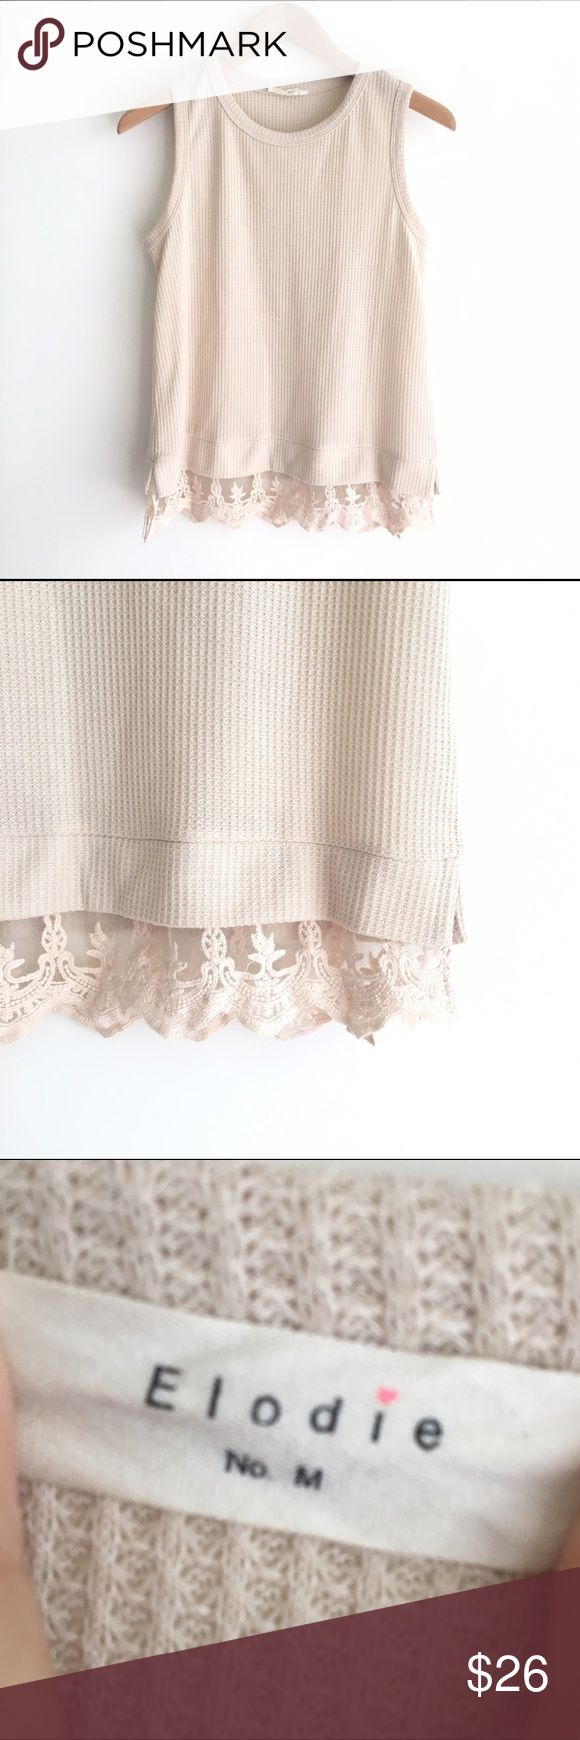 Eloide Tan Knit Sleeveless Top with Lace Hem Beige colored knitted tank with lace hemline. Excellent condition, no signs of wear or flaws. Nordstrom Tops Tank Tops